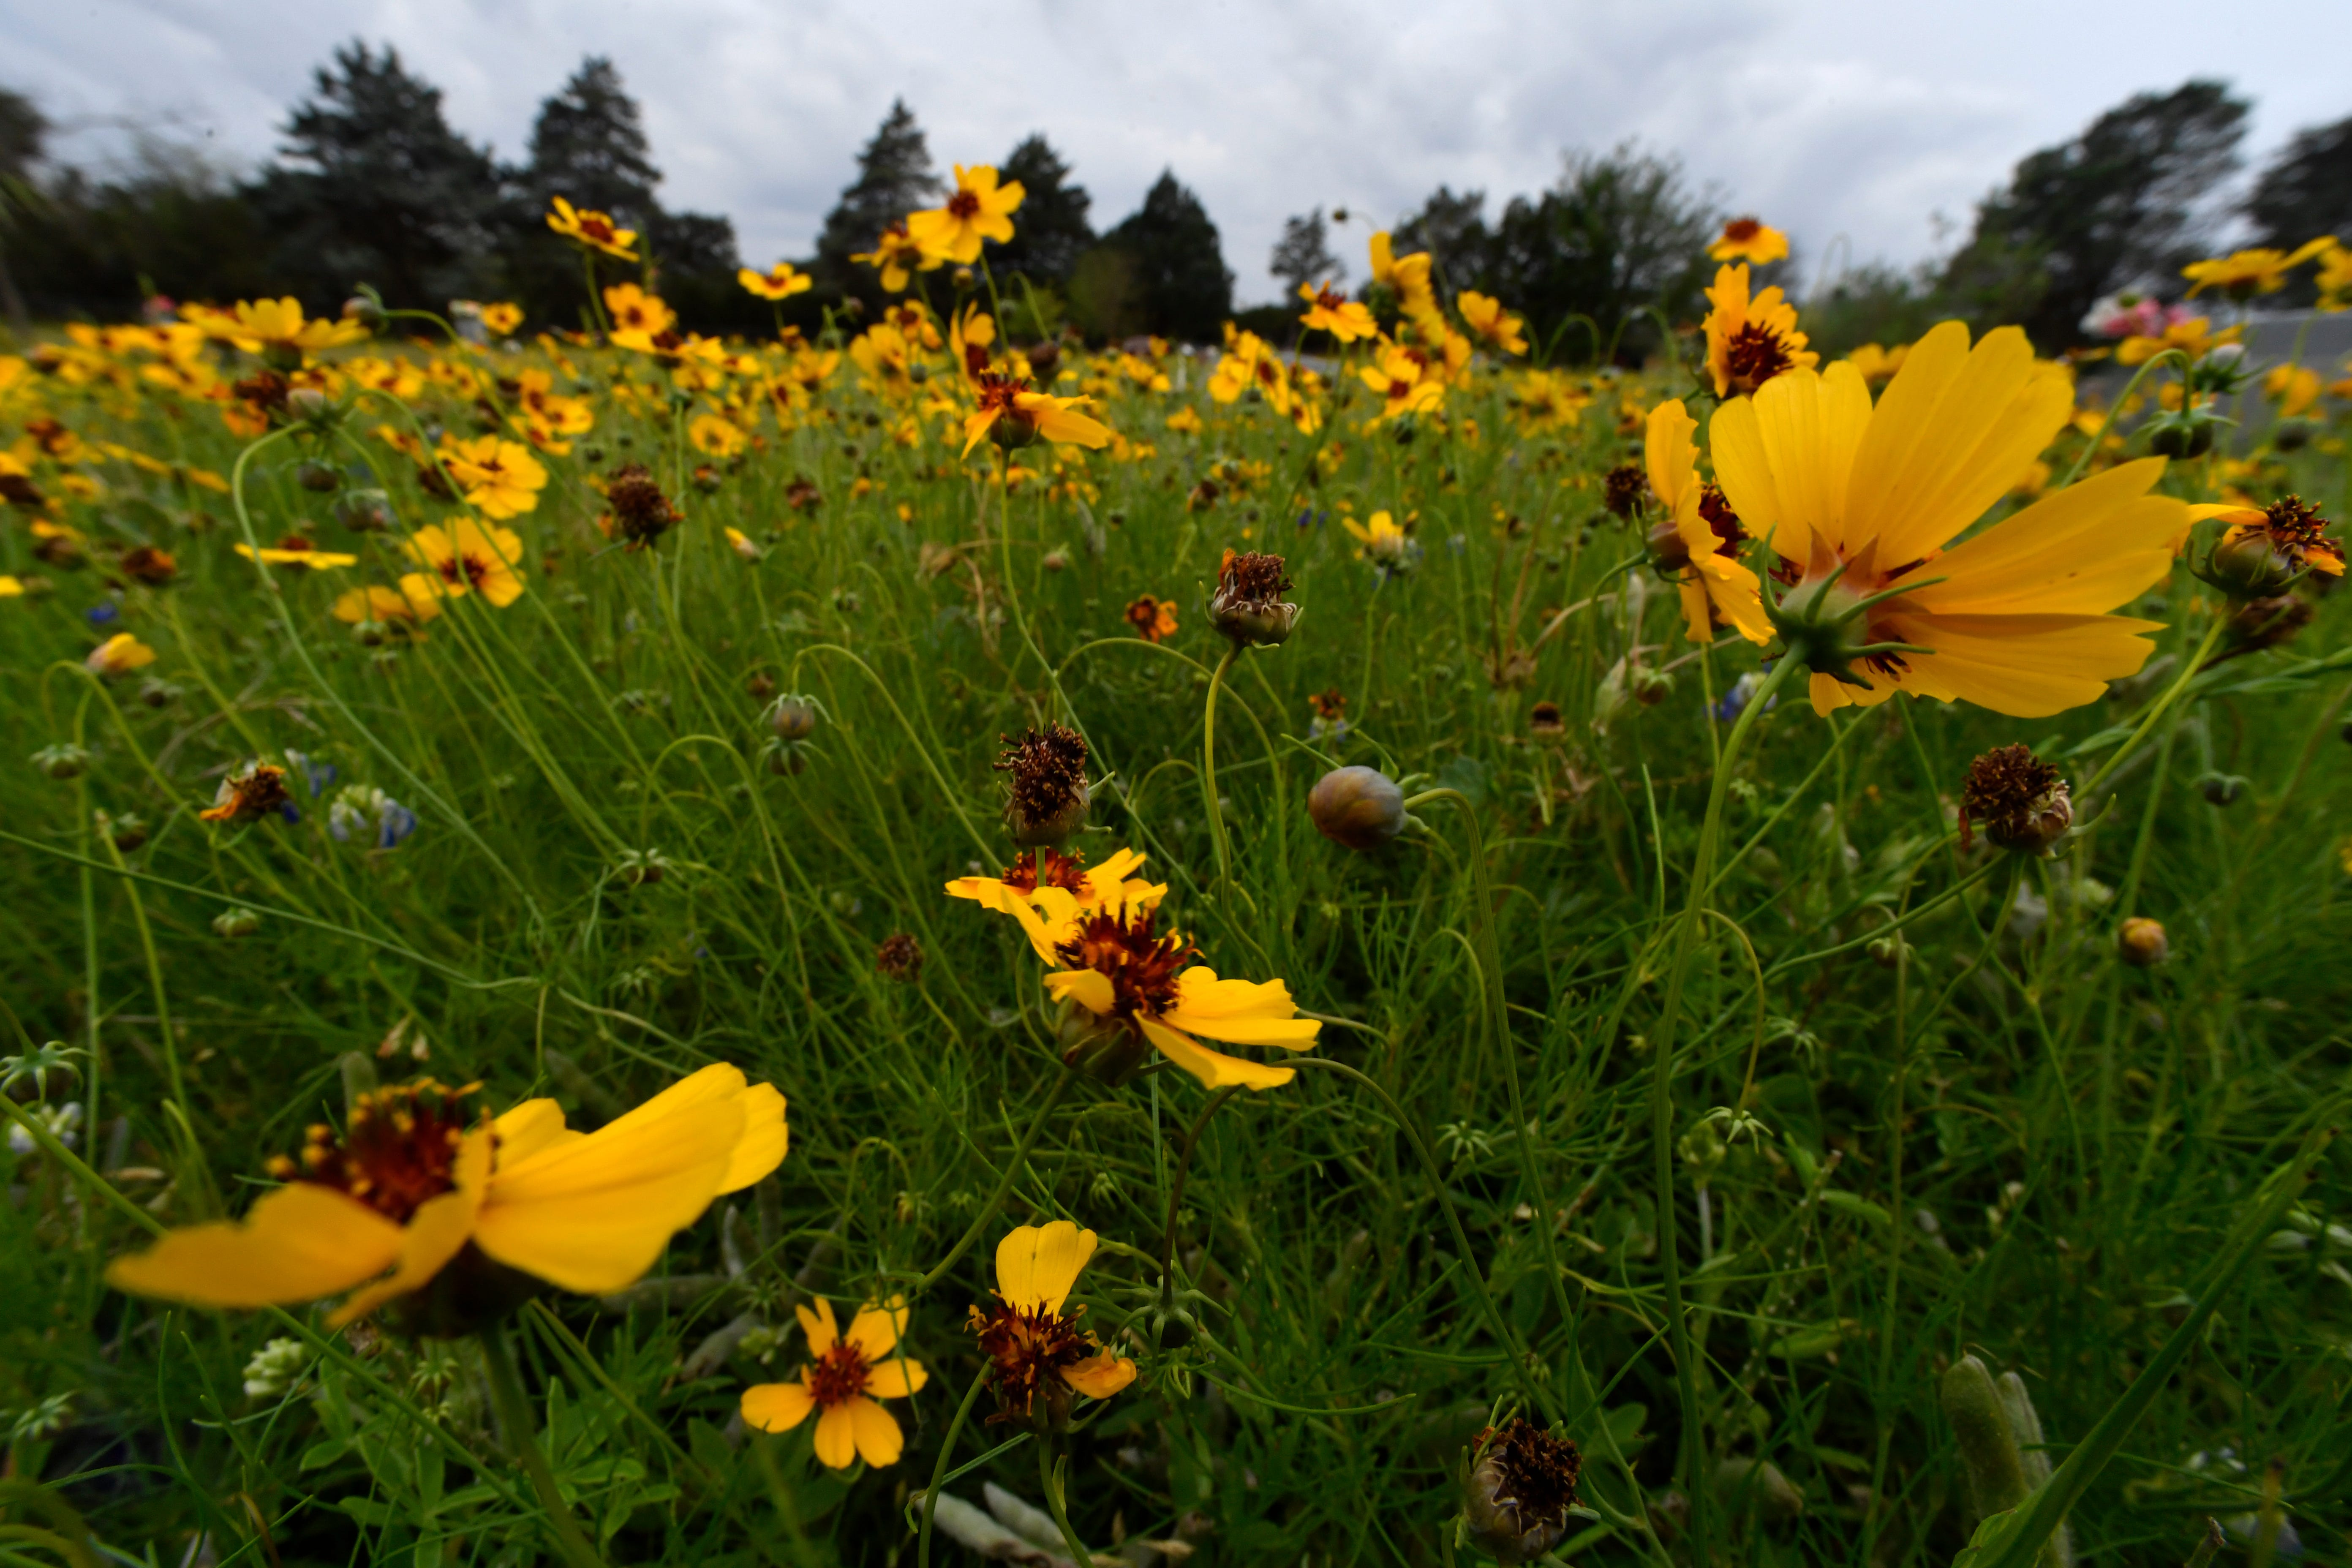 Coreopsis tinctoria, sometimes called the Plains Coreopsis, Goldenwave or Golden Tickseed, spreads out at the Buffalo Gap Cemetery.